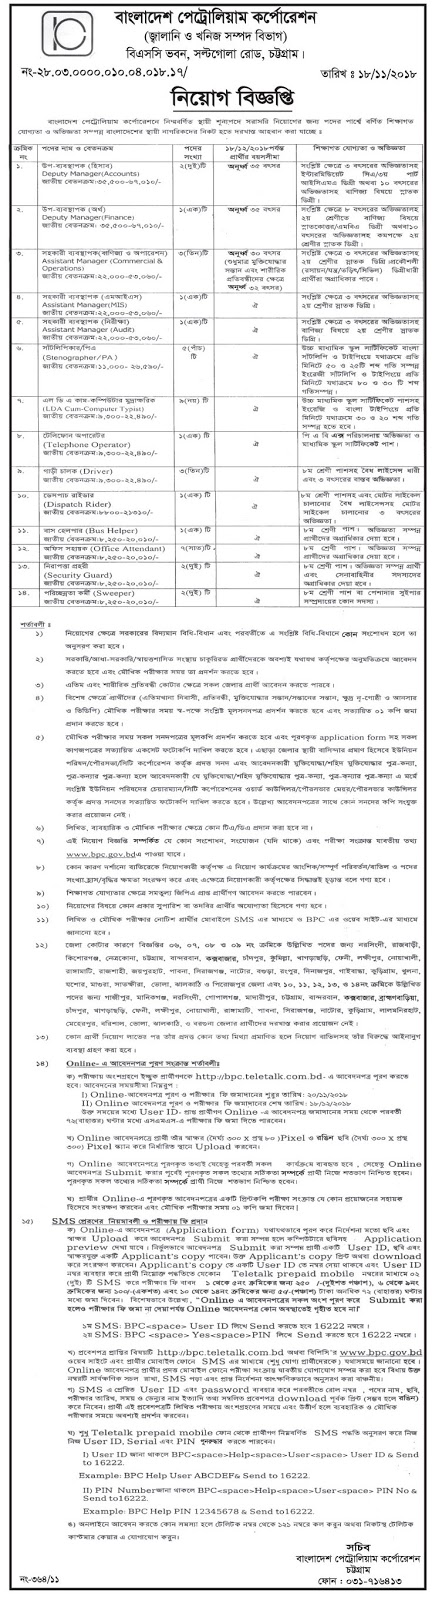 Bangladesh Petroleum Corporation (BPC) Job Circular 2018